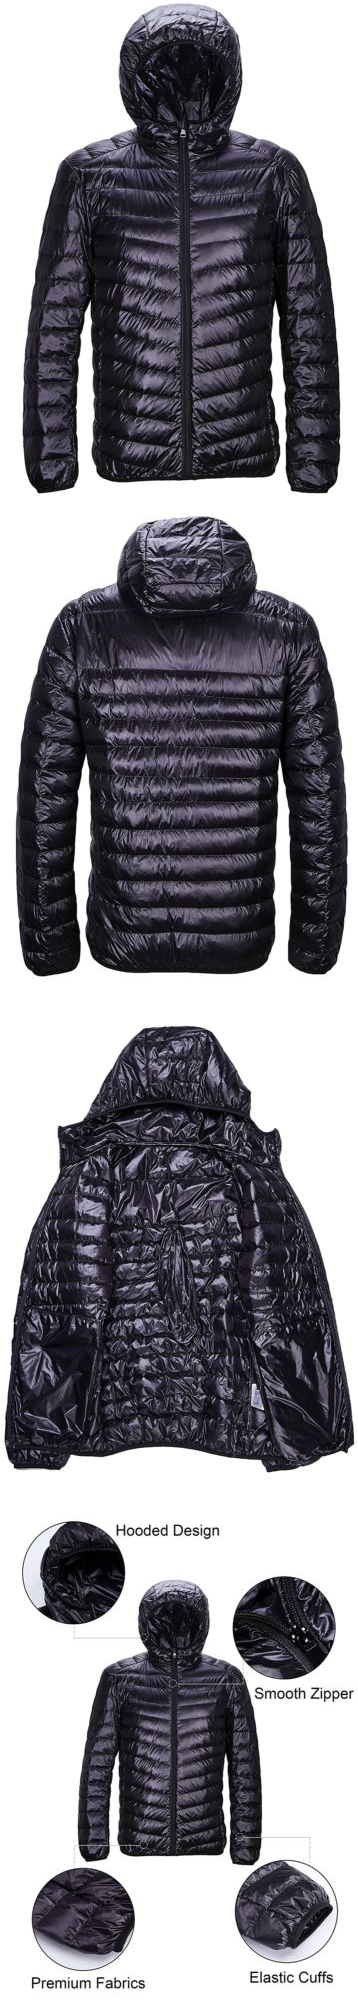 Men Coats And Jackets: Mens Puffer Down Jacket Coat Feather Lightweight Packable Outwear Black -> BUY IT NOW ONLY: $32.99 on eBay!